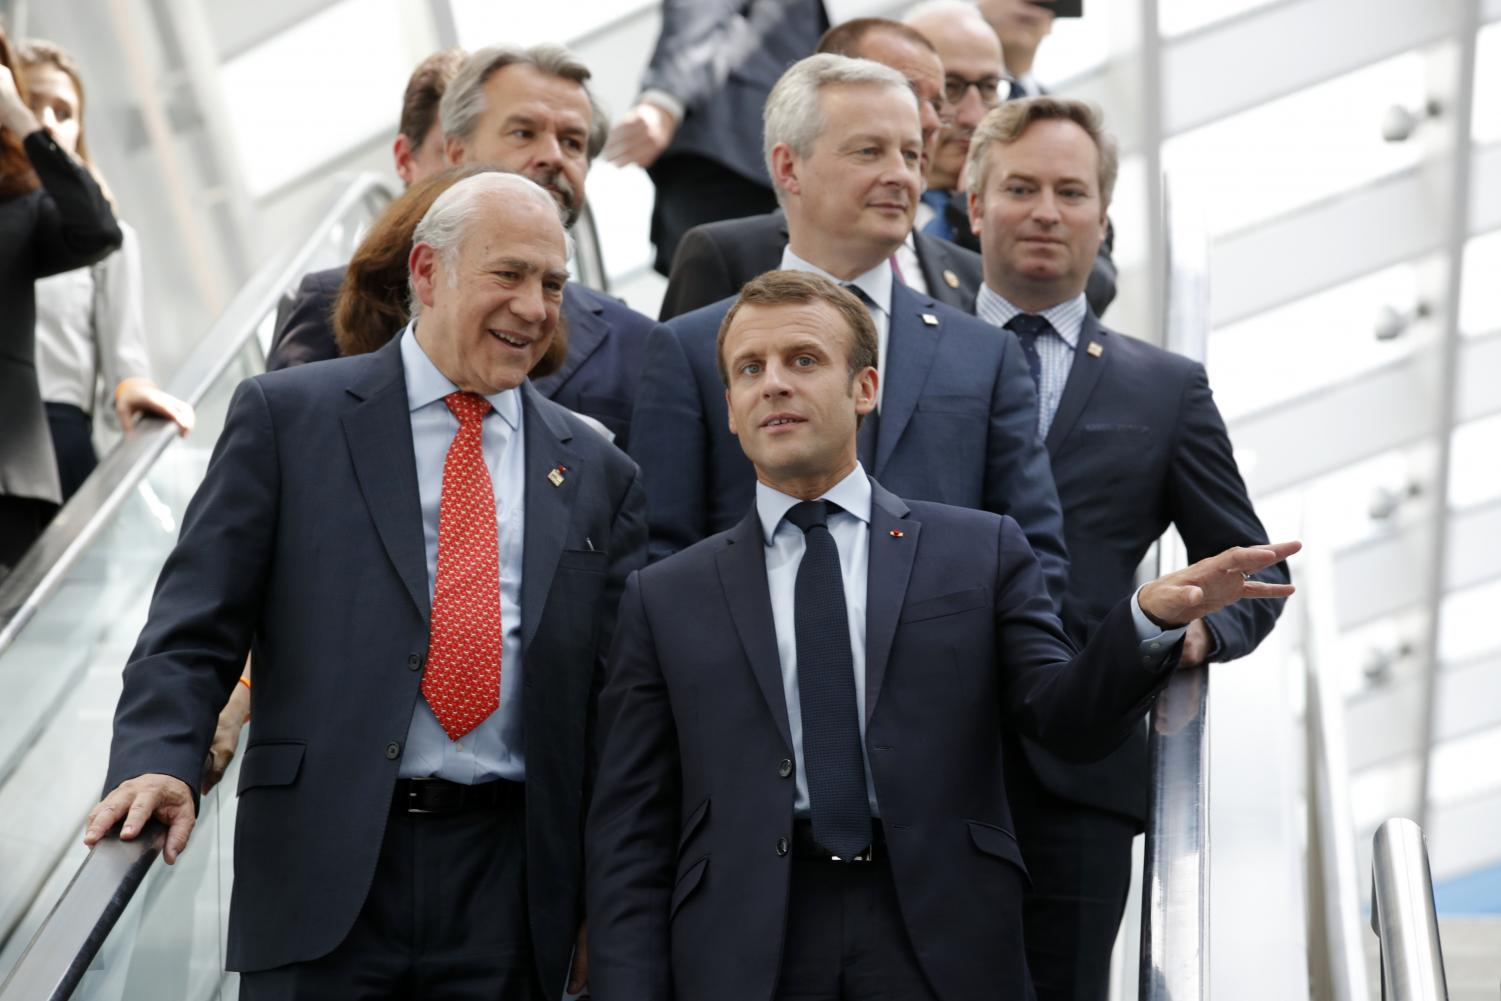 French President Emmanuel Macron, right, and OECD Secretary-General Angel Gurria arrive at a meeting in Paris on Wednesday. Macron warned against trade wars in an impassioned speech about international cooperation two days before the Trump administration decides whether to hit Europe with new tariffs.